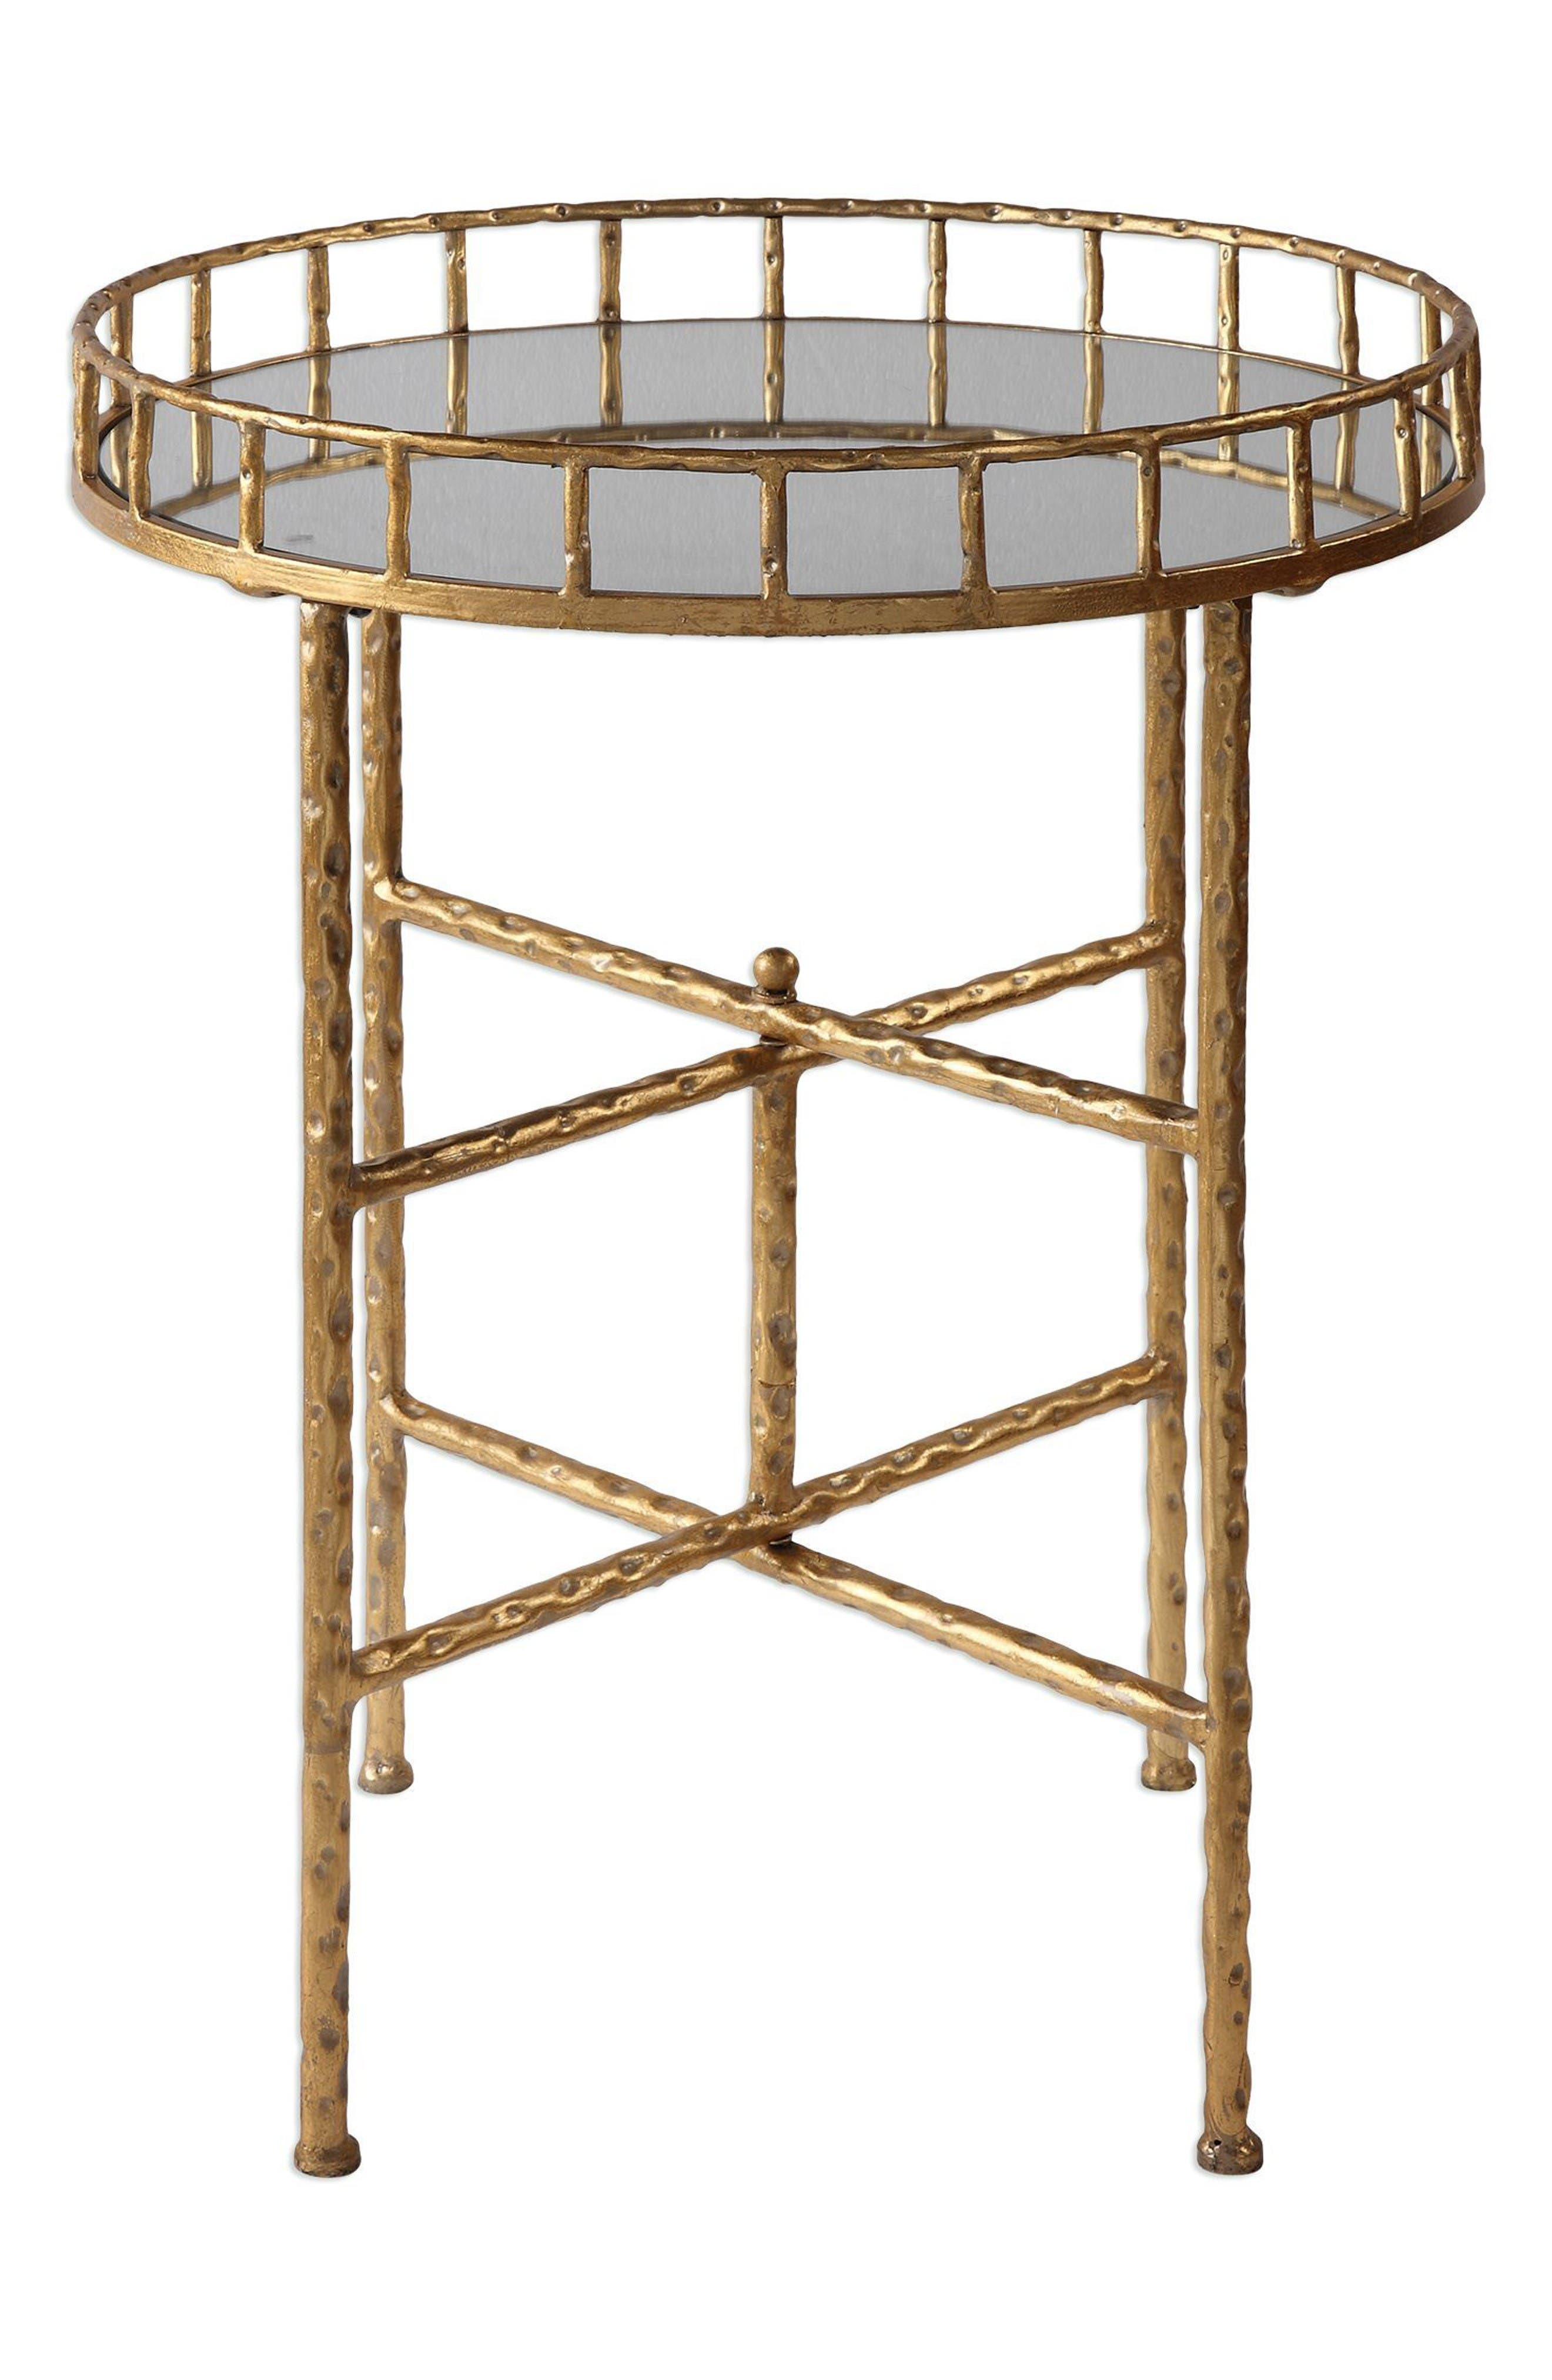 Main Image - Uttermost Tilly Accent Table